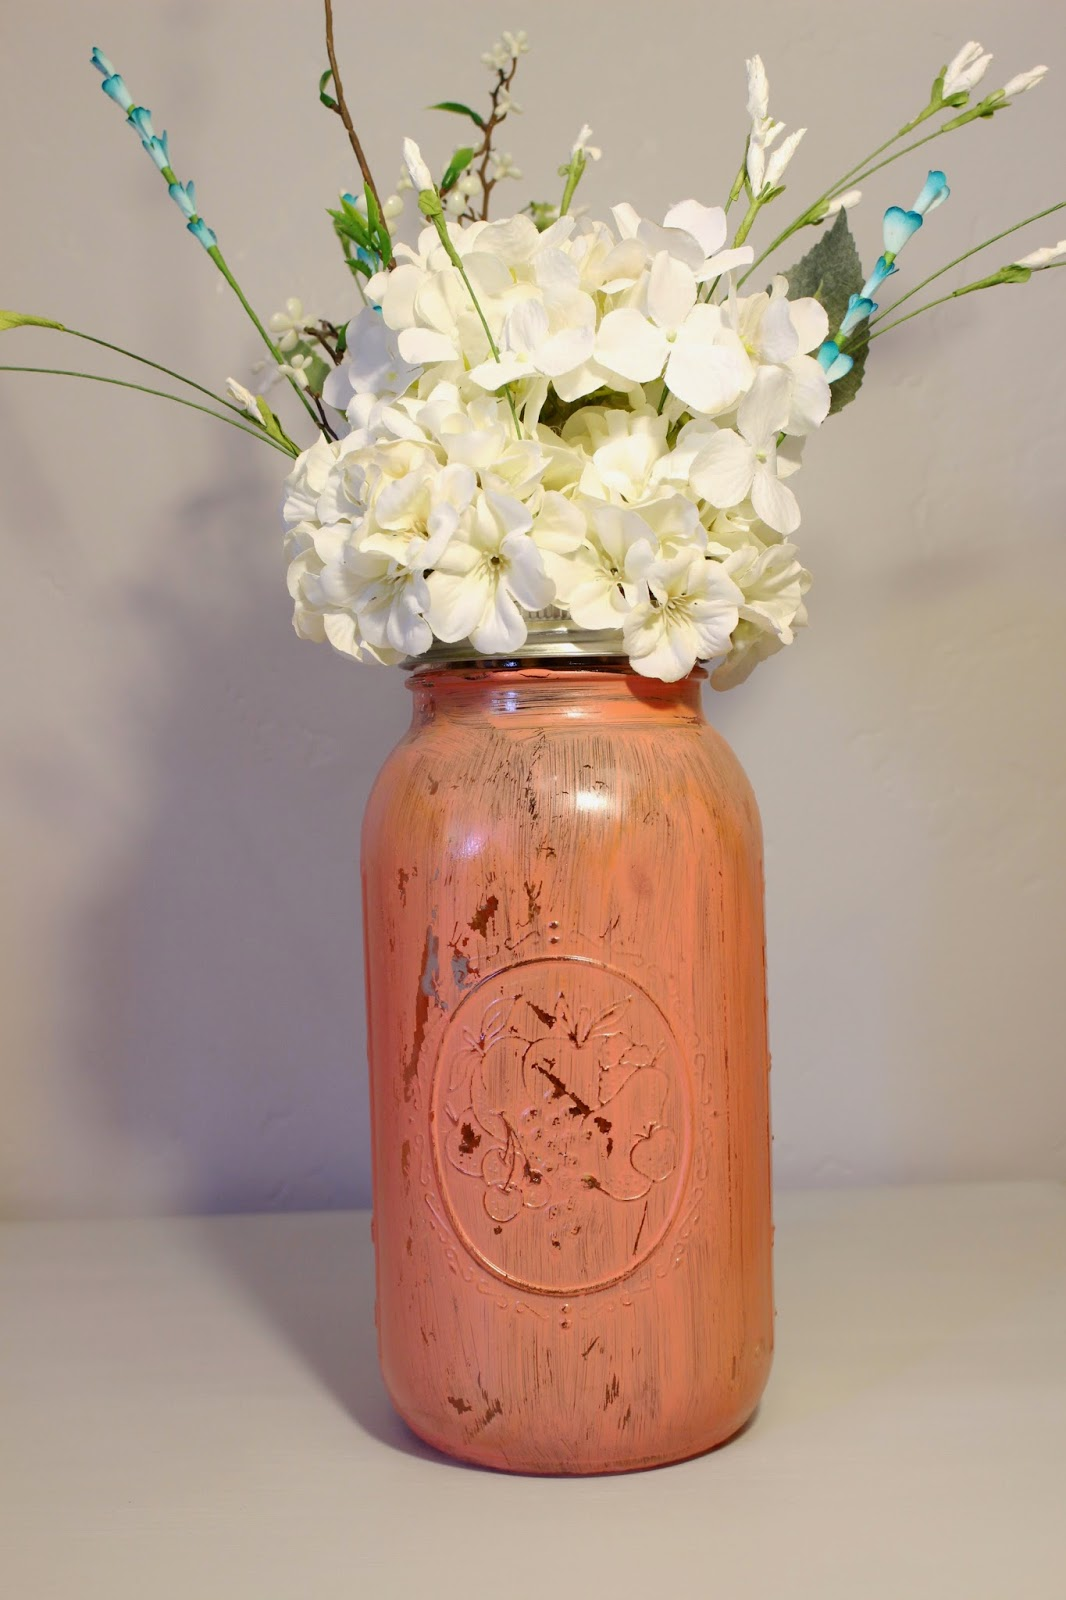 rustic vase, wedding vase, rustic wedding vase, handpainted vase, coastal wedding vase, antique vase, shabby chic vase, distressed vase, wedding decor, rustic wedding decor, rustic wedding centerpiece, coral wedding decor, coral vase, handpainted coral vase, rustic salmon vase, peach vase, rustic coral vase, coral wedding decor, peach mason jar, handpainted mason jar, distressed mason jar, antique peach mason jar, antique coral mason jar, large mason jar, mason jar decor, large painted mason jar, rustic mason jar, rustic peach mason jar